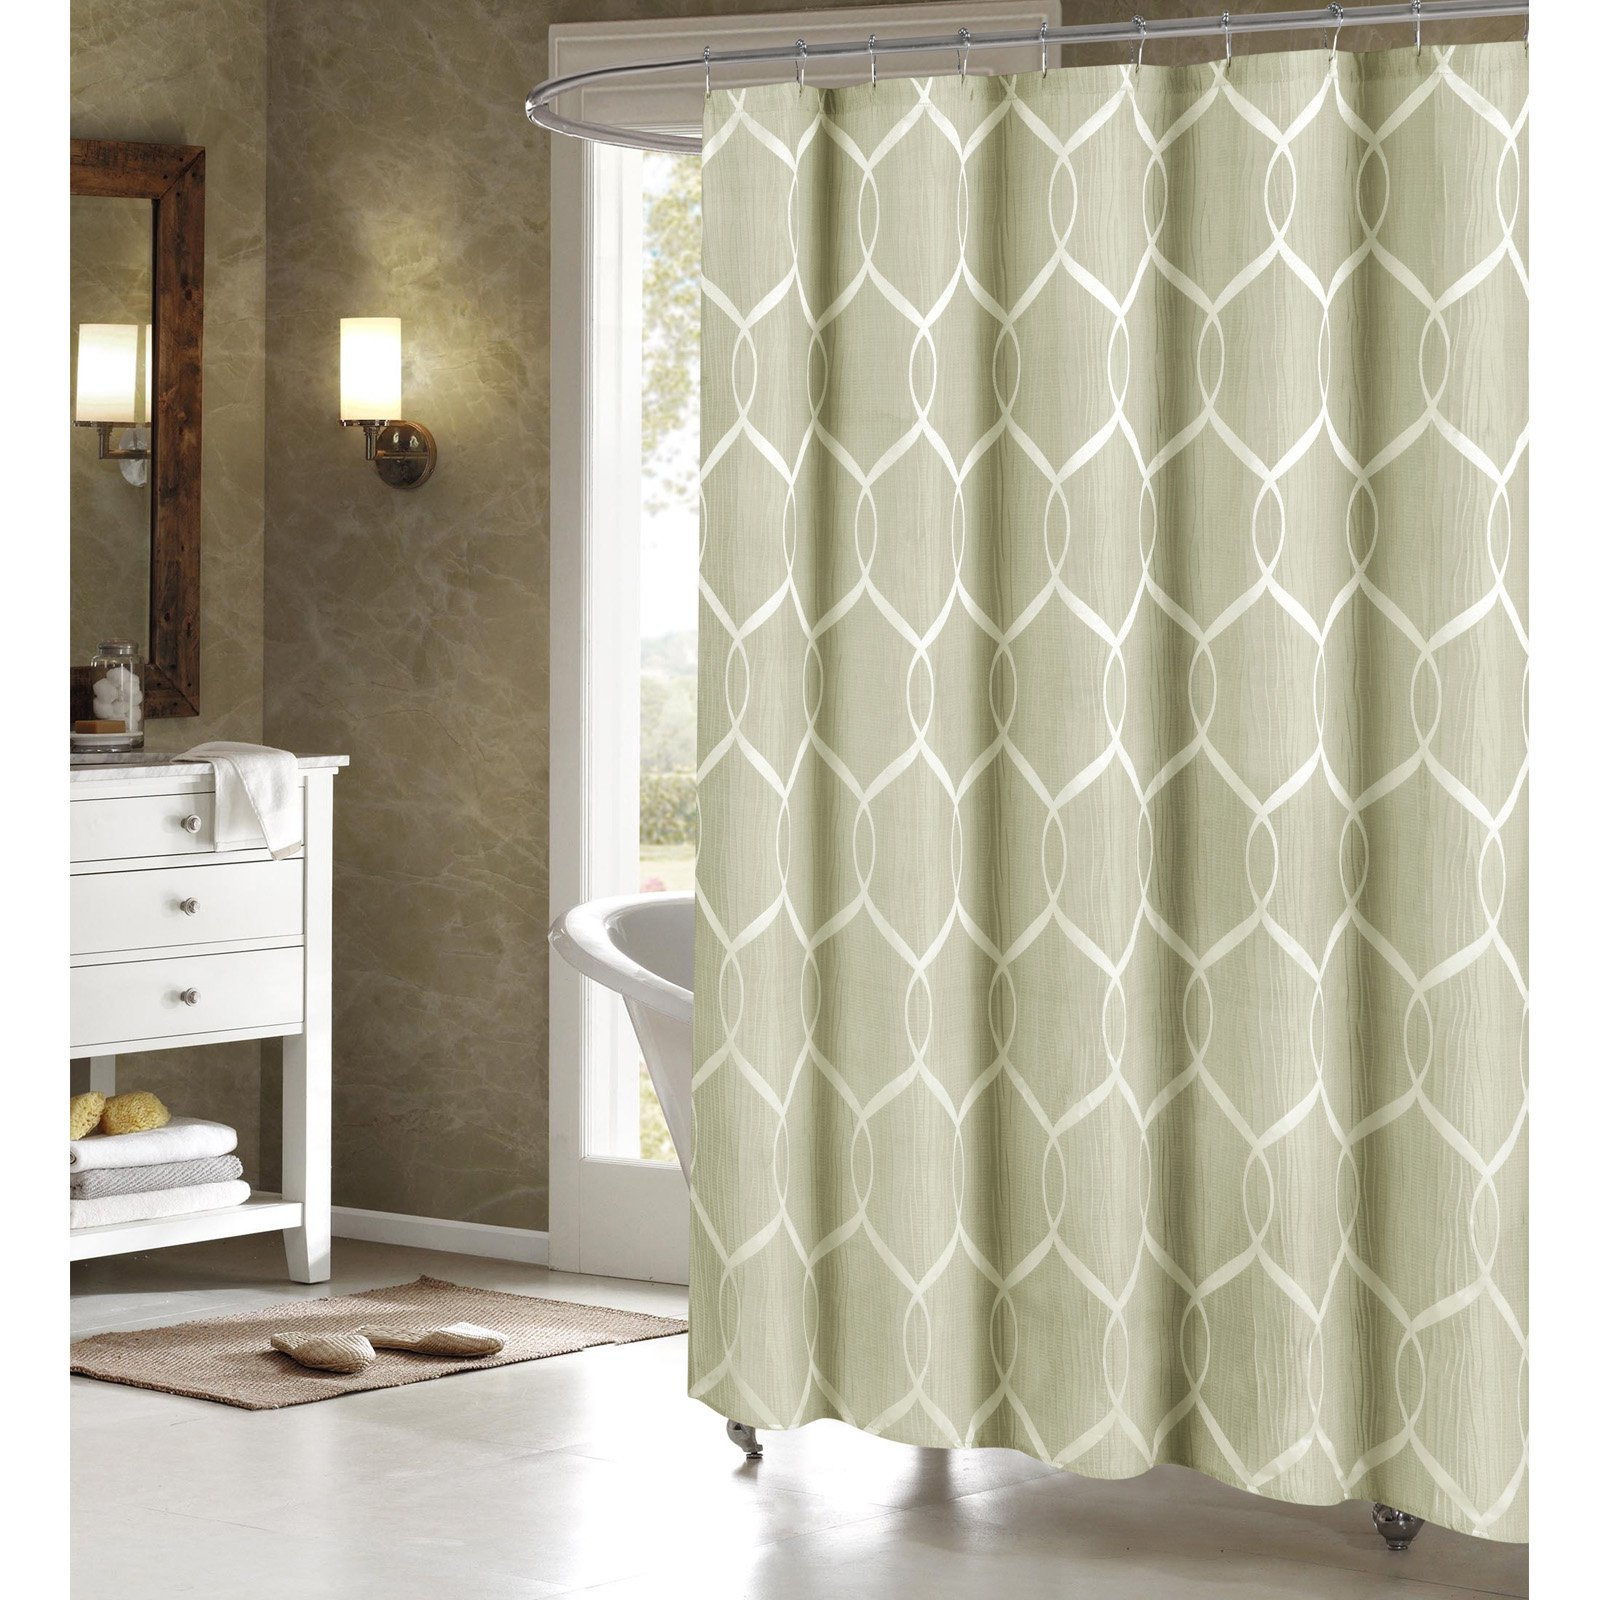 Duck River Quey Wrinkle Wave Fabric Shower Curtain Sage Fabric